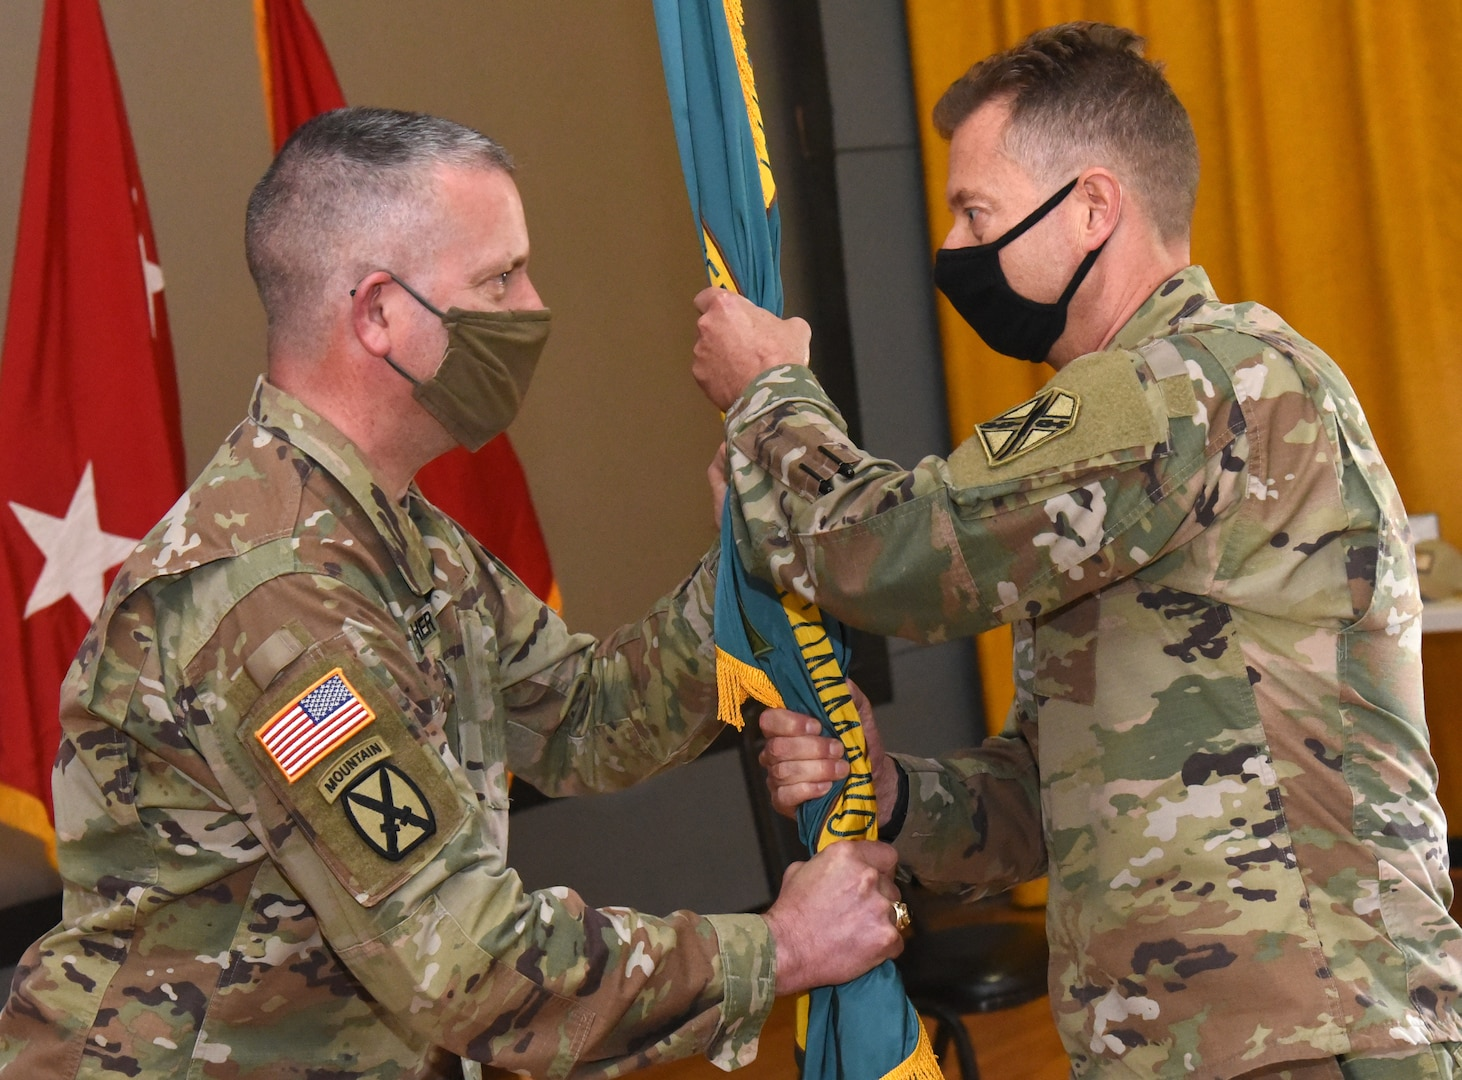 Col. Timothy D. Pillion takes command of Maneuver Training Center Fort Pickett from Col. Paul C. Gravely during a ceremony April 16, 2021, at Fort Pickett, Virginia.